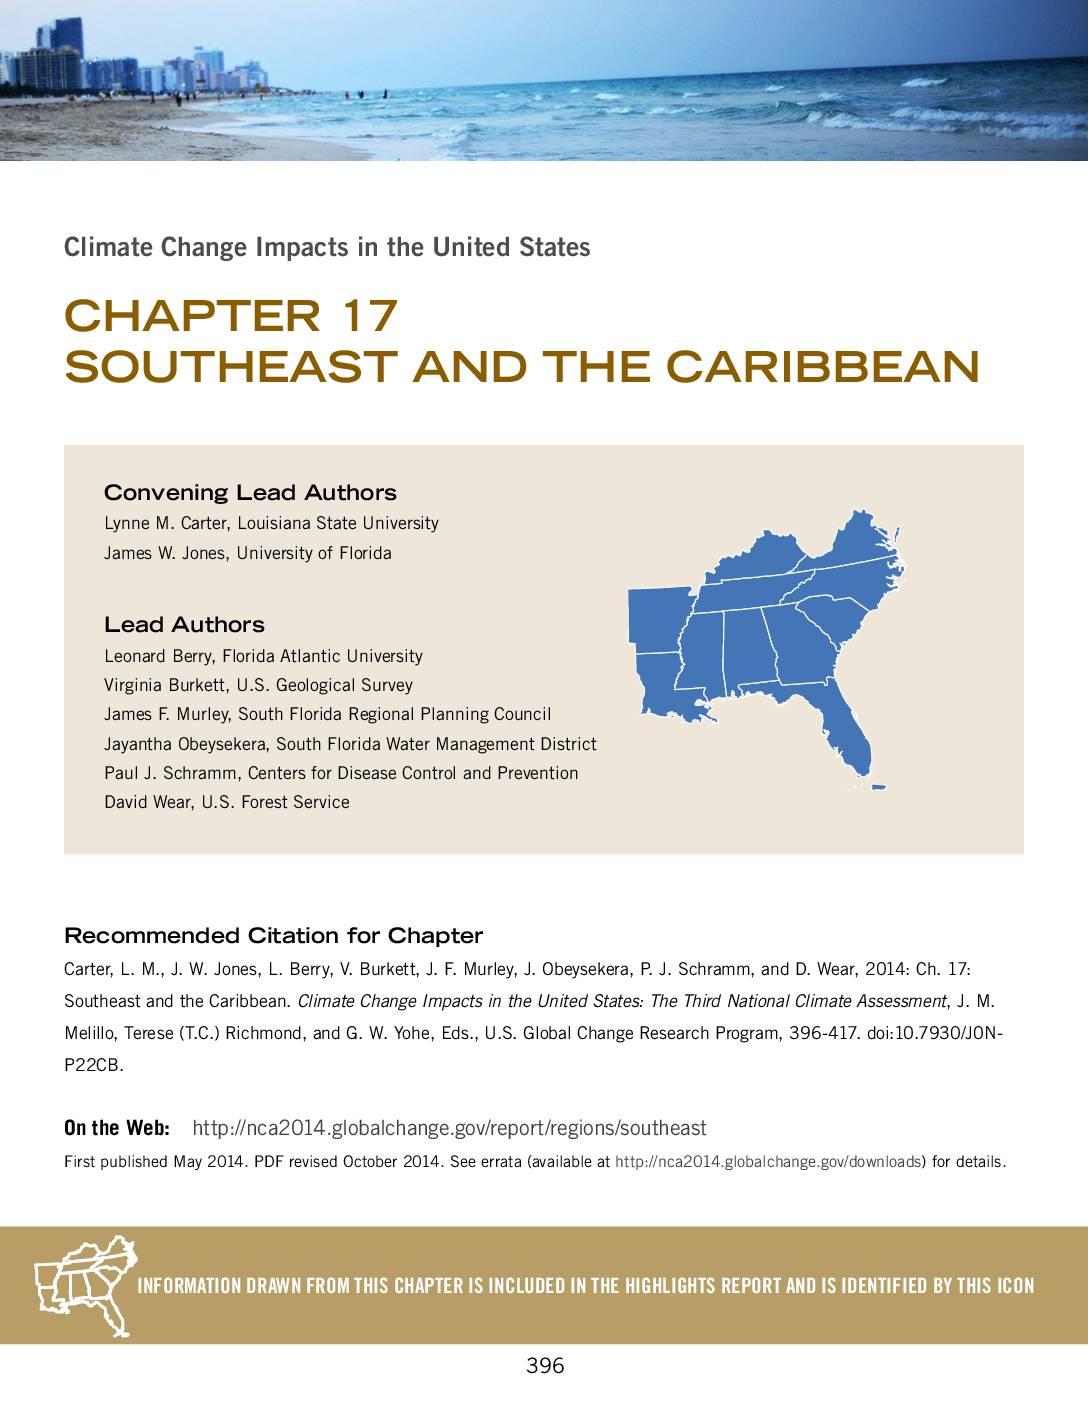 National Climate Assessment: Climate Change Impacts in the Southeast and Carribbean (2014)